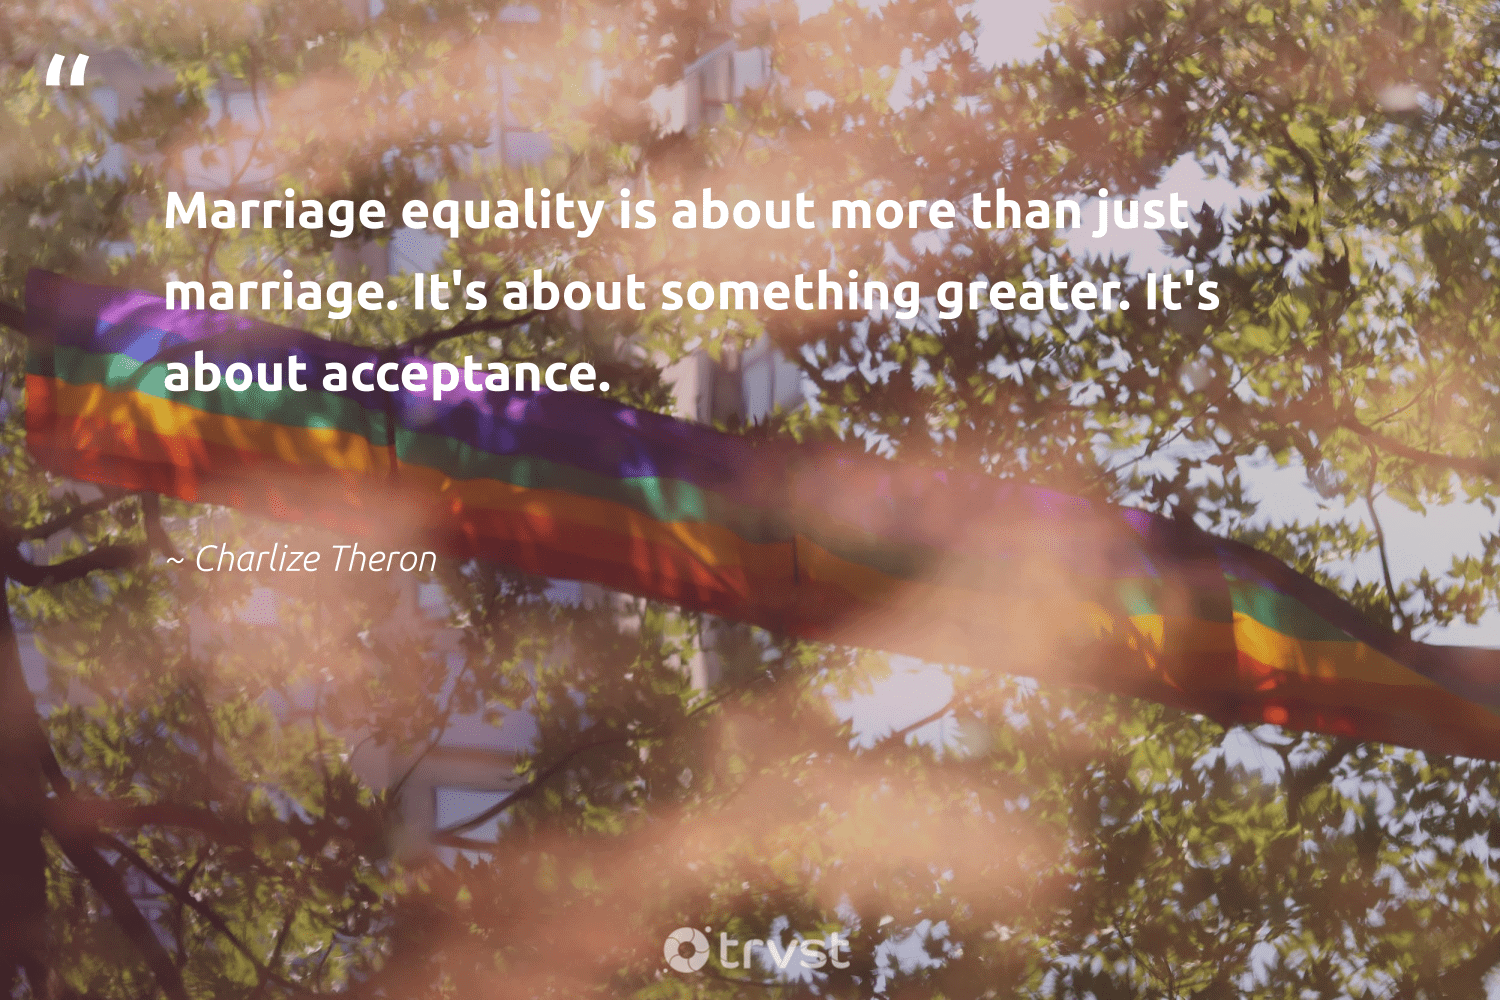 """""""Marriage equality is about more than just marriage. It's about something greater. It's about acceptance.""""  - Charlize Theron #trvst #quotes #equality #empowerment #socialgood #socialchange #dosomething #equalopportunity #bethechange #giveback #ecoconscious #standup"""